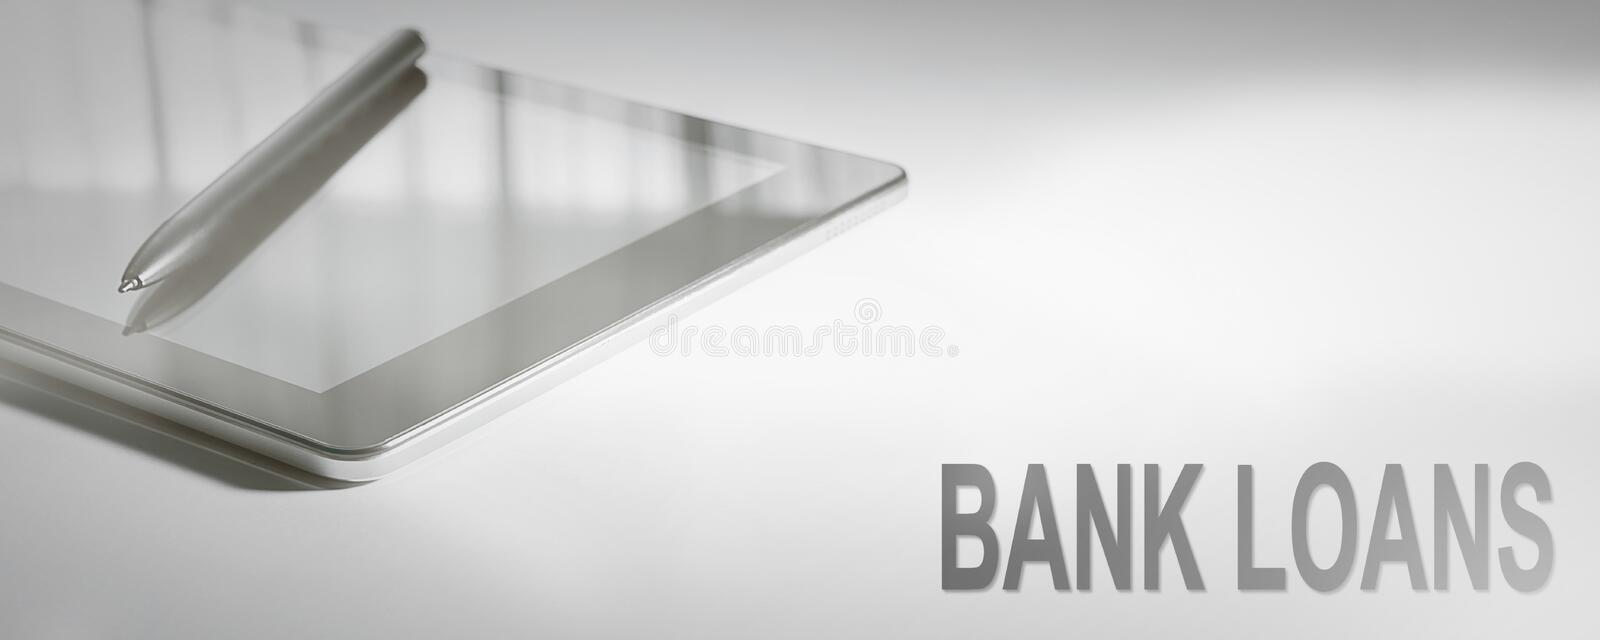 BANK LOANS Business Concept Digital Technology. Graphic Concept stock images